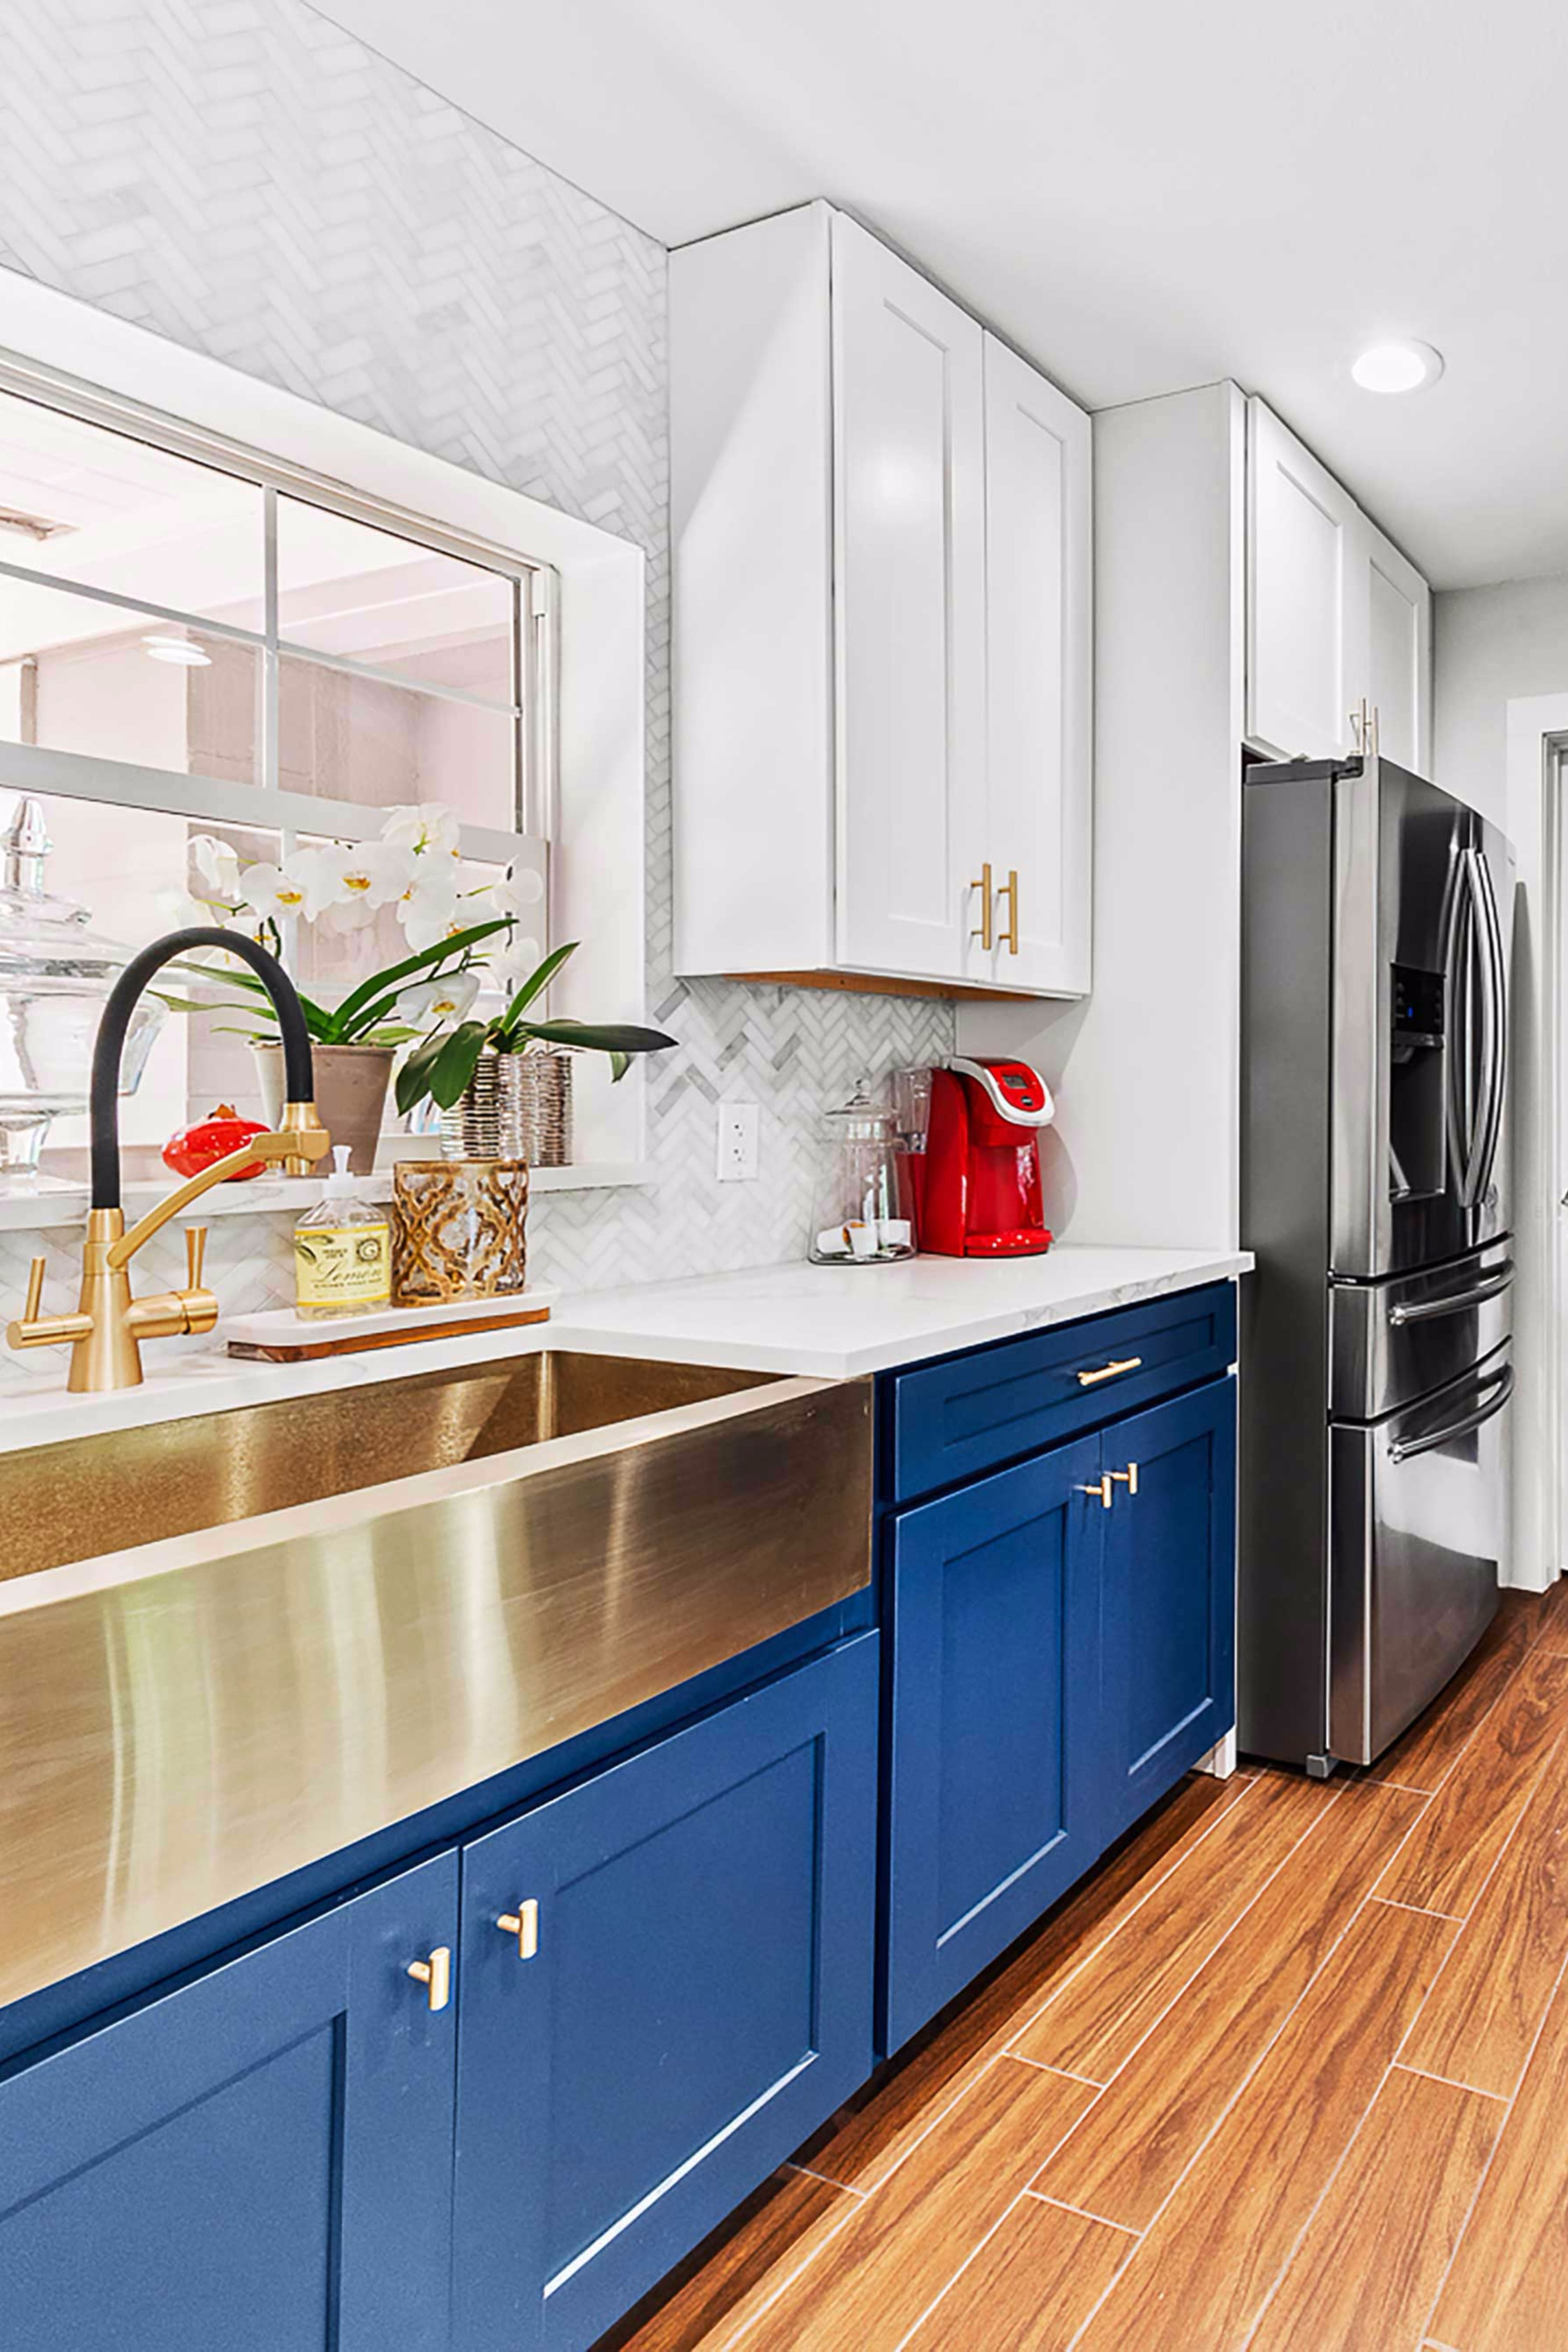 We Re Gearing Up To Celebrate The 4th In Style With This Midcentury Modern Kitchen Featuring O Kitchen Design Small Mid Century Modern Kitchen Modern Kitchen